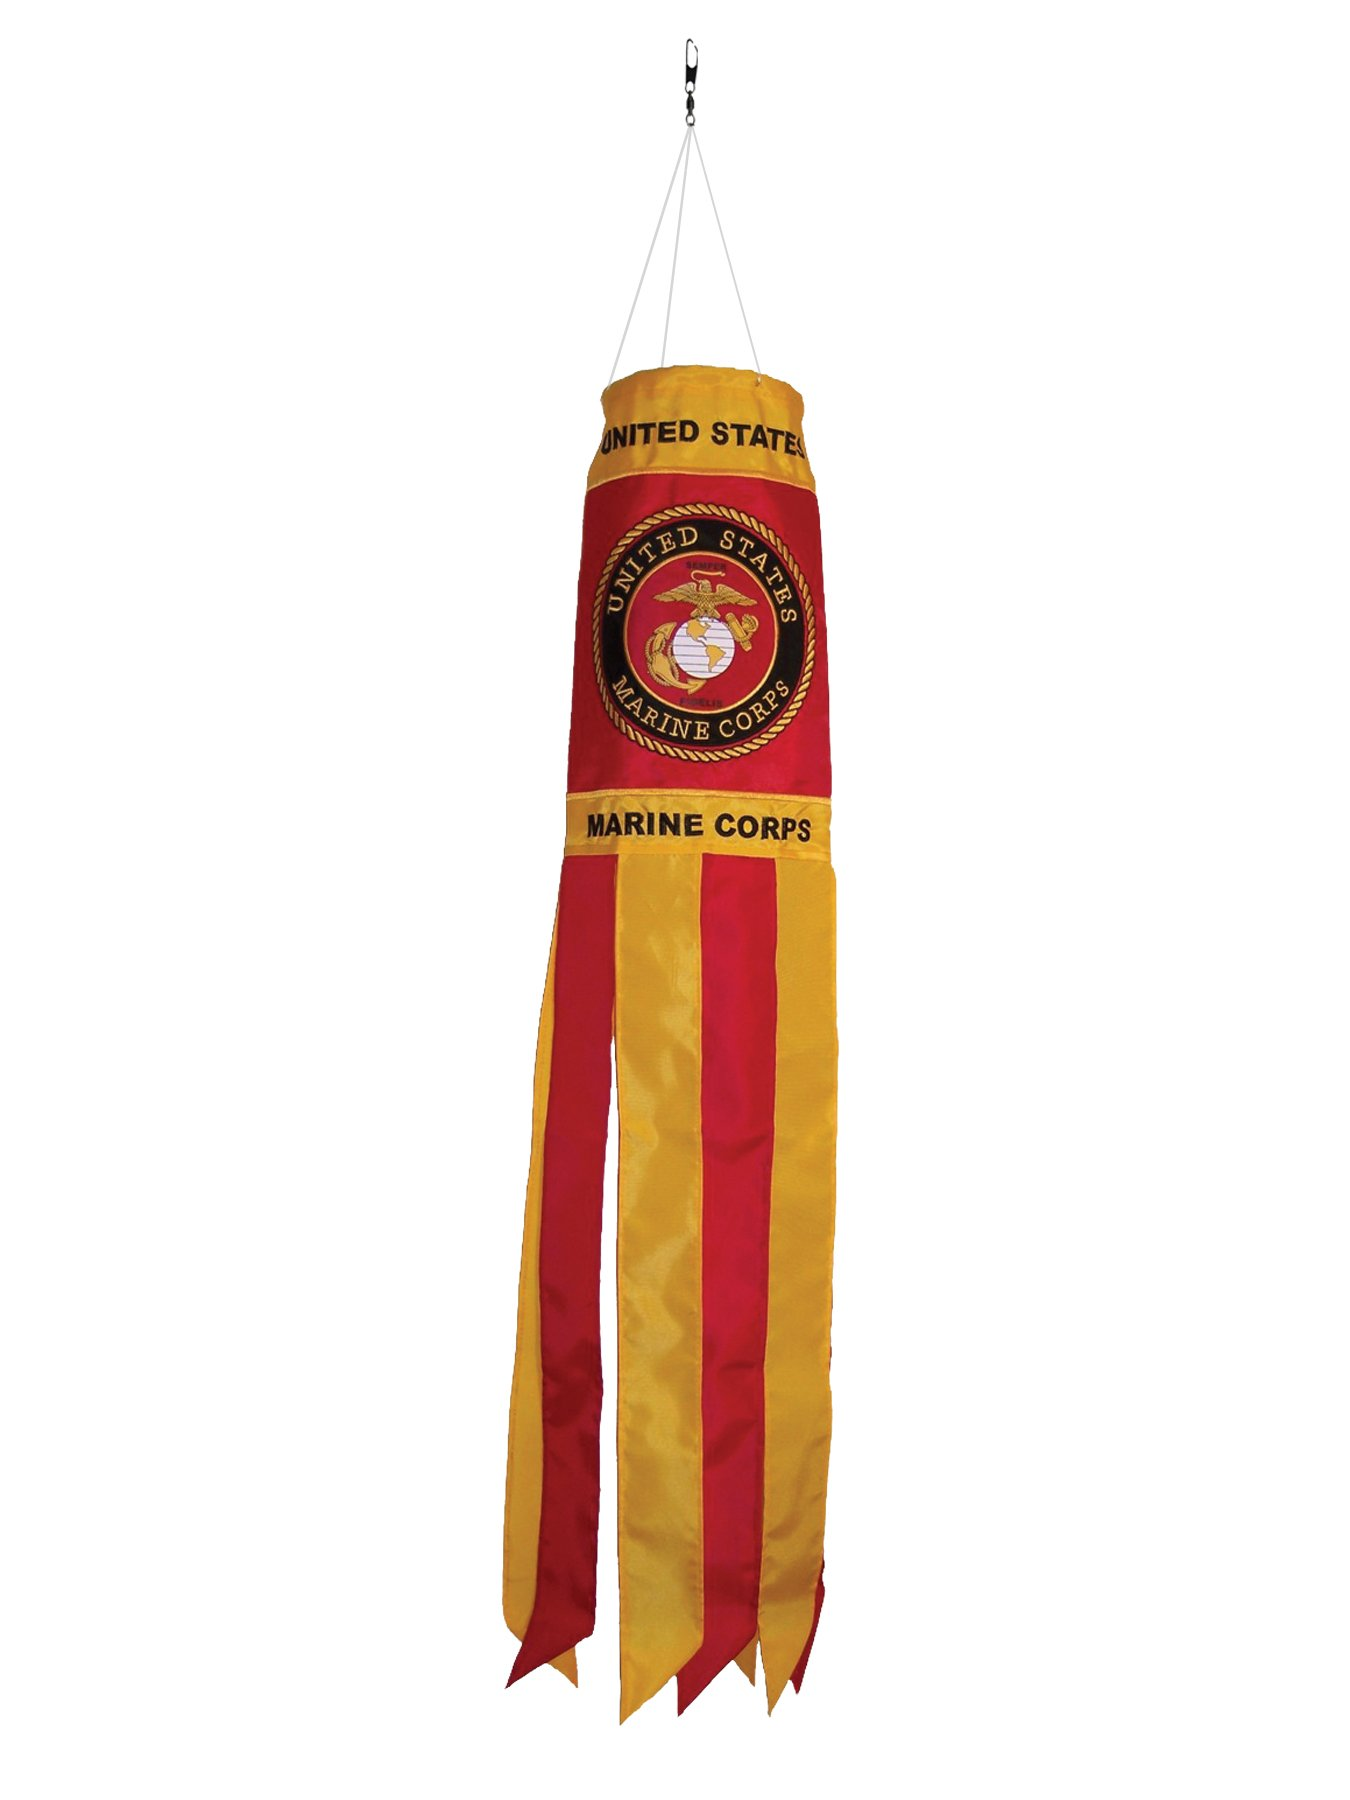 In the Breeze U.S. Marine Corps Emblem 40 Inch Windsock - Military Service Hanging Decoration - Durable Embroidered and Appliqué Design